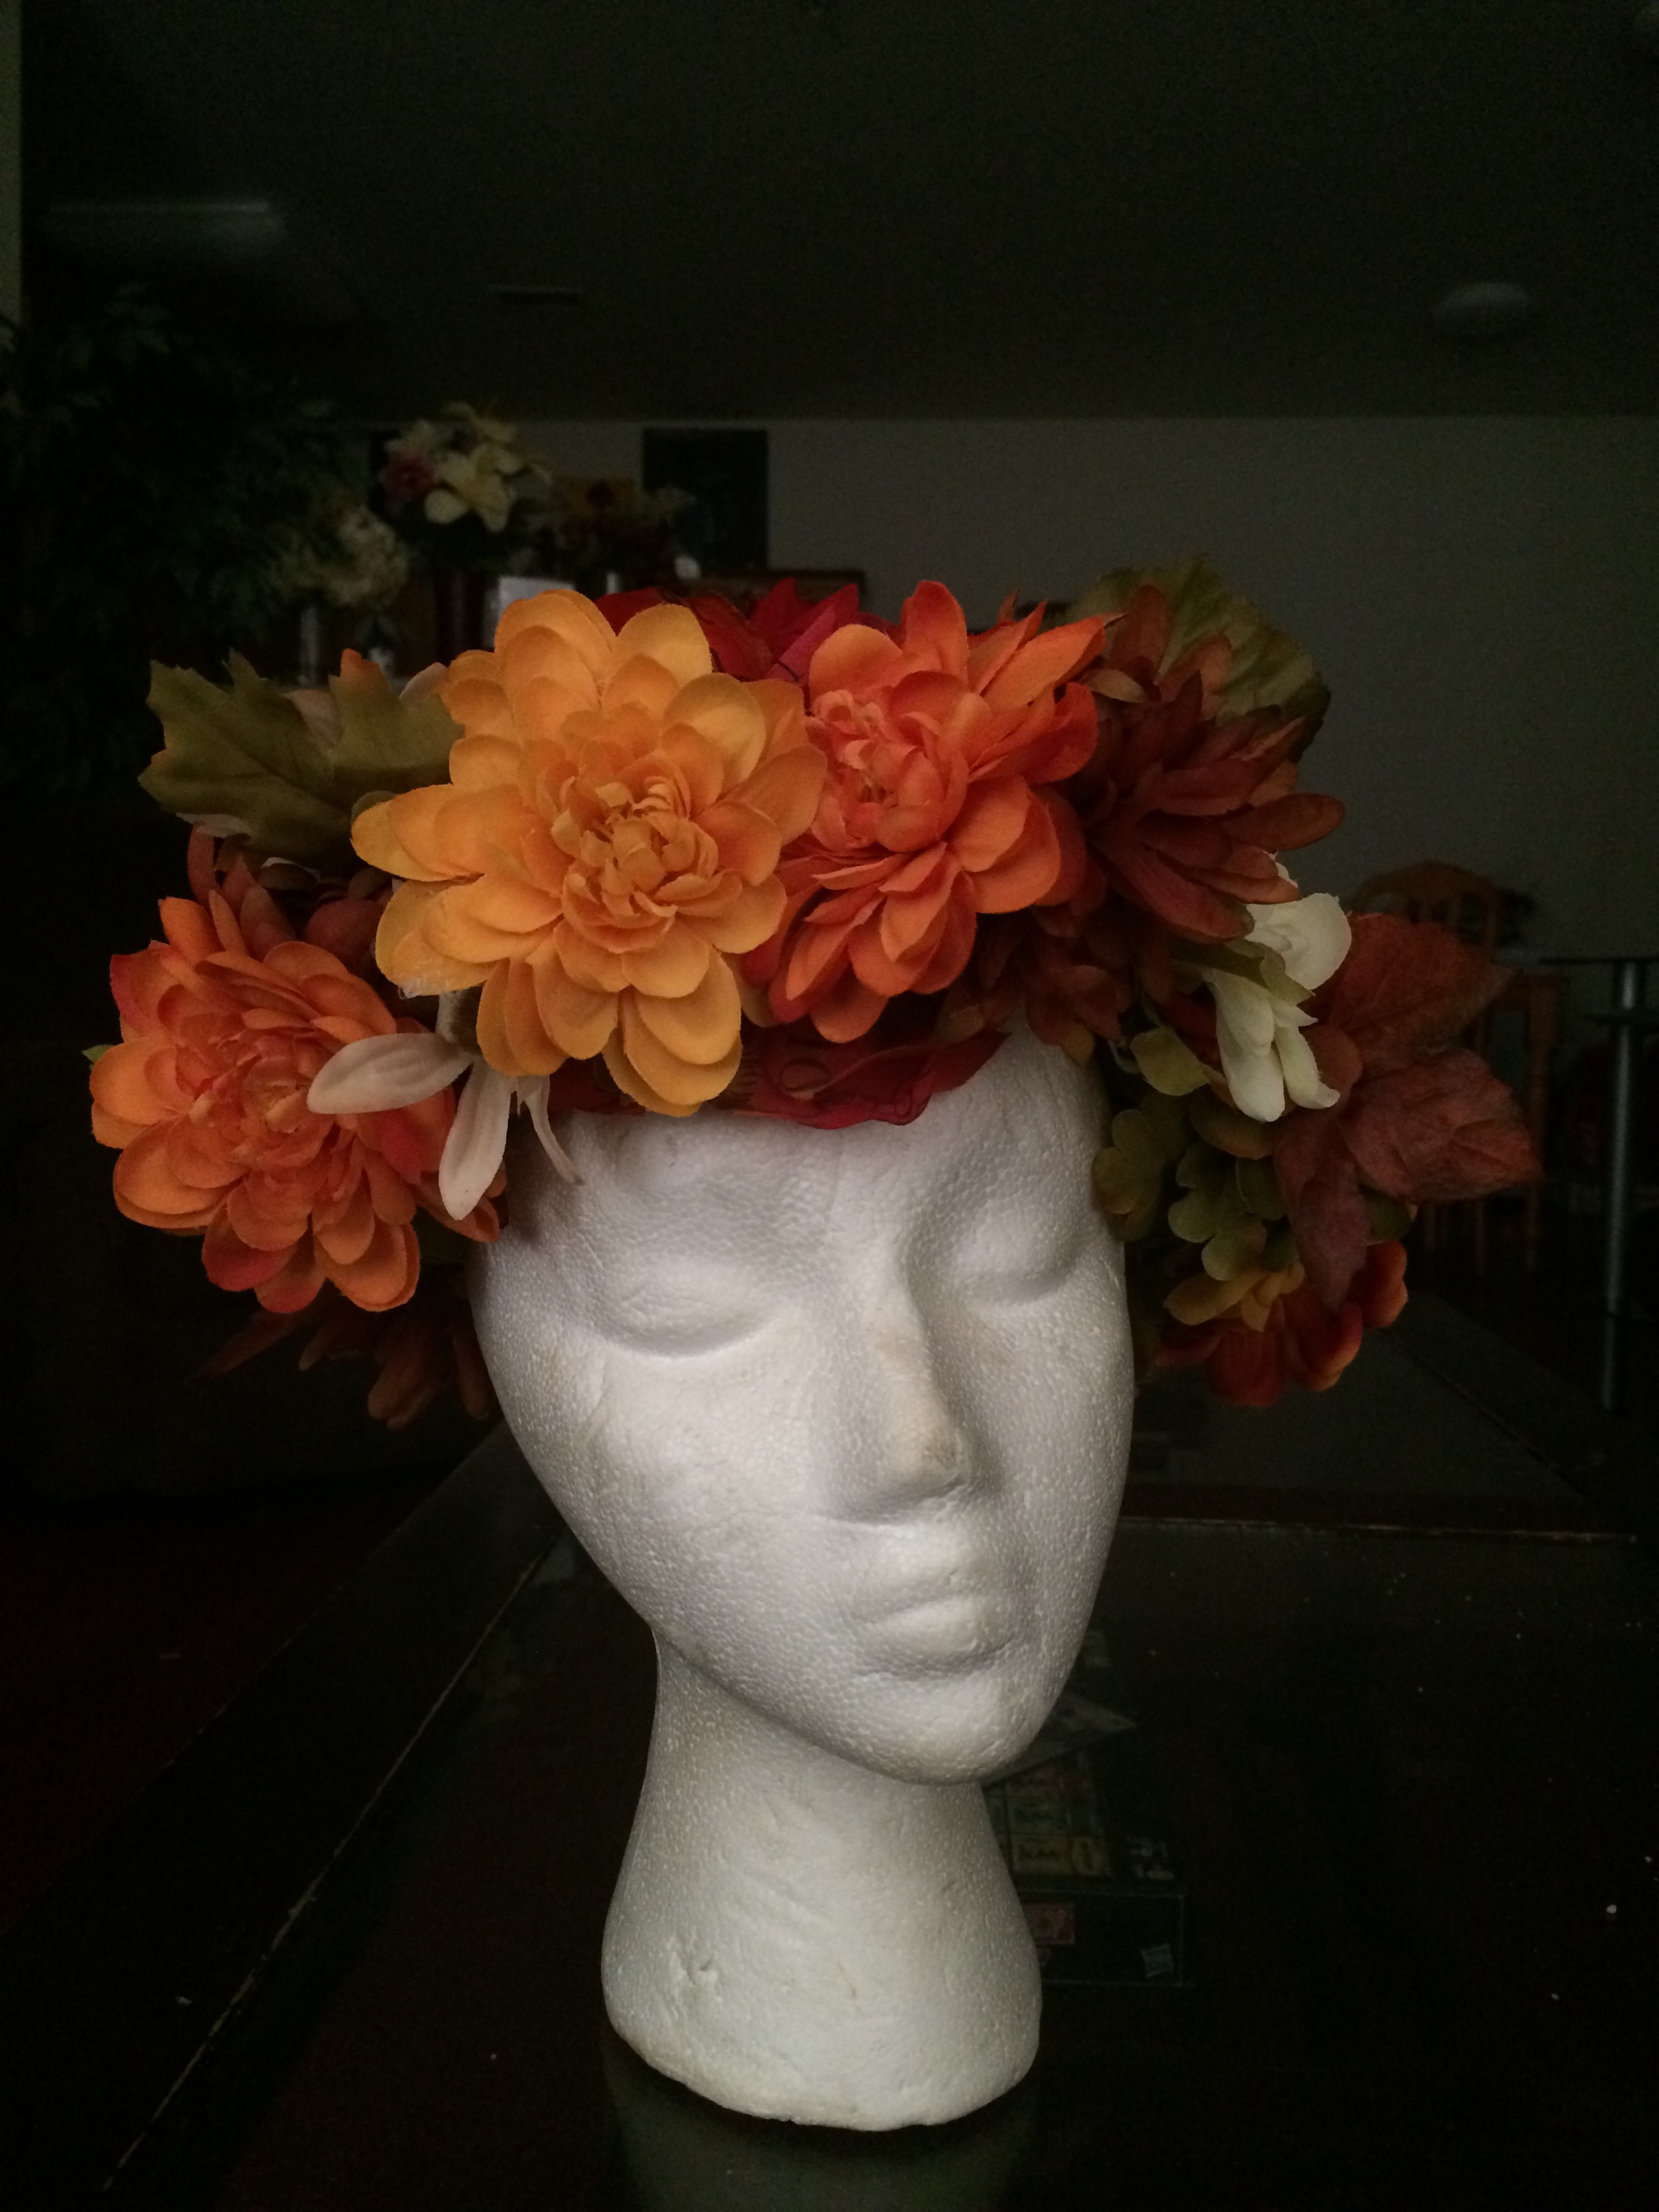 Just finished up the flower Halo Doing some placement on the mannequin.